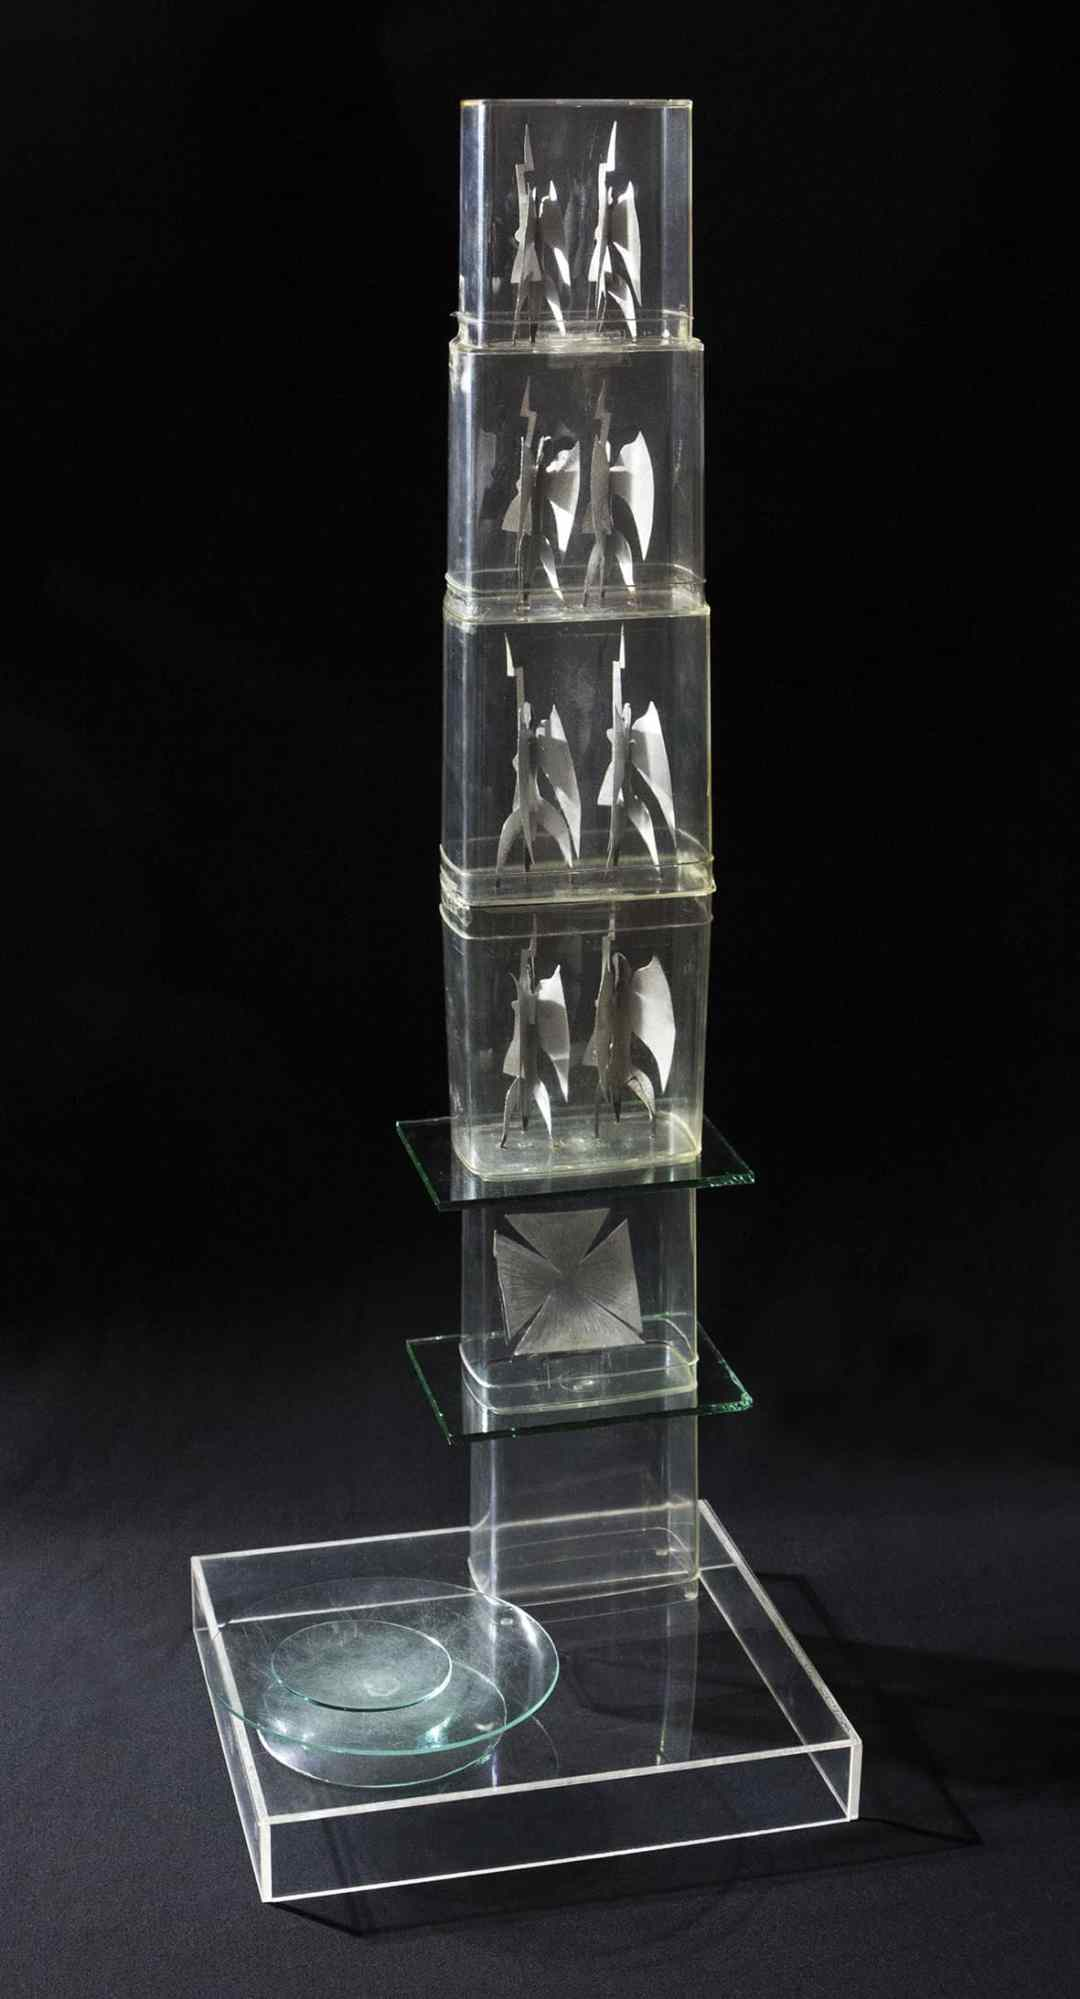 Władysław Hasior, Monument to the Victory of the Polish Soldier, 1970, project, plastic, glass, metal, ht. 94,5 cm. Photograph by Mirosław Łanowiecki. Collection of the Museum of Architecture in Wrocław